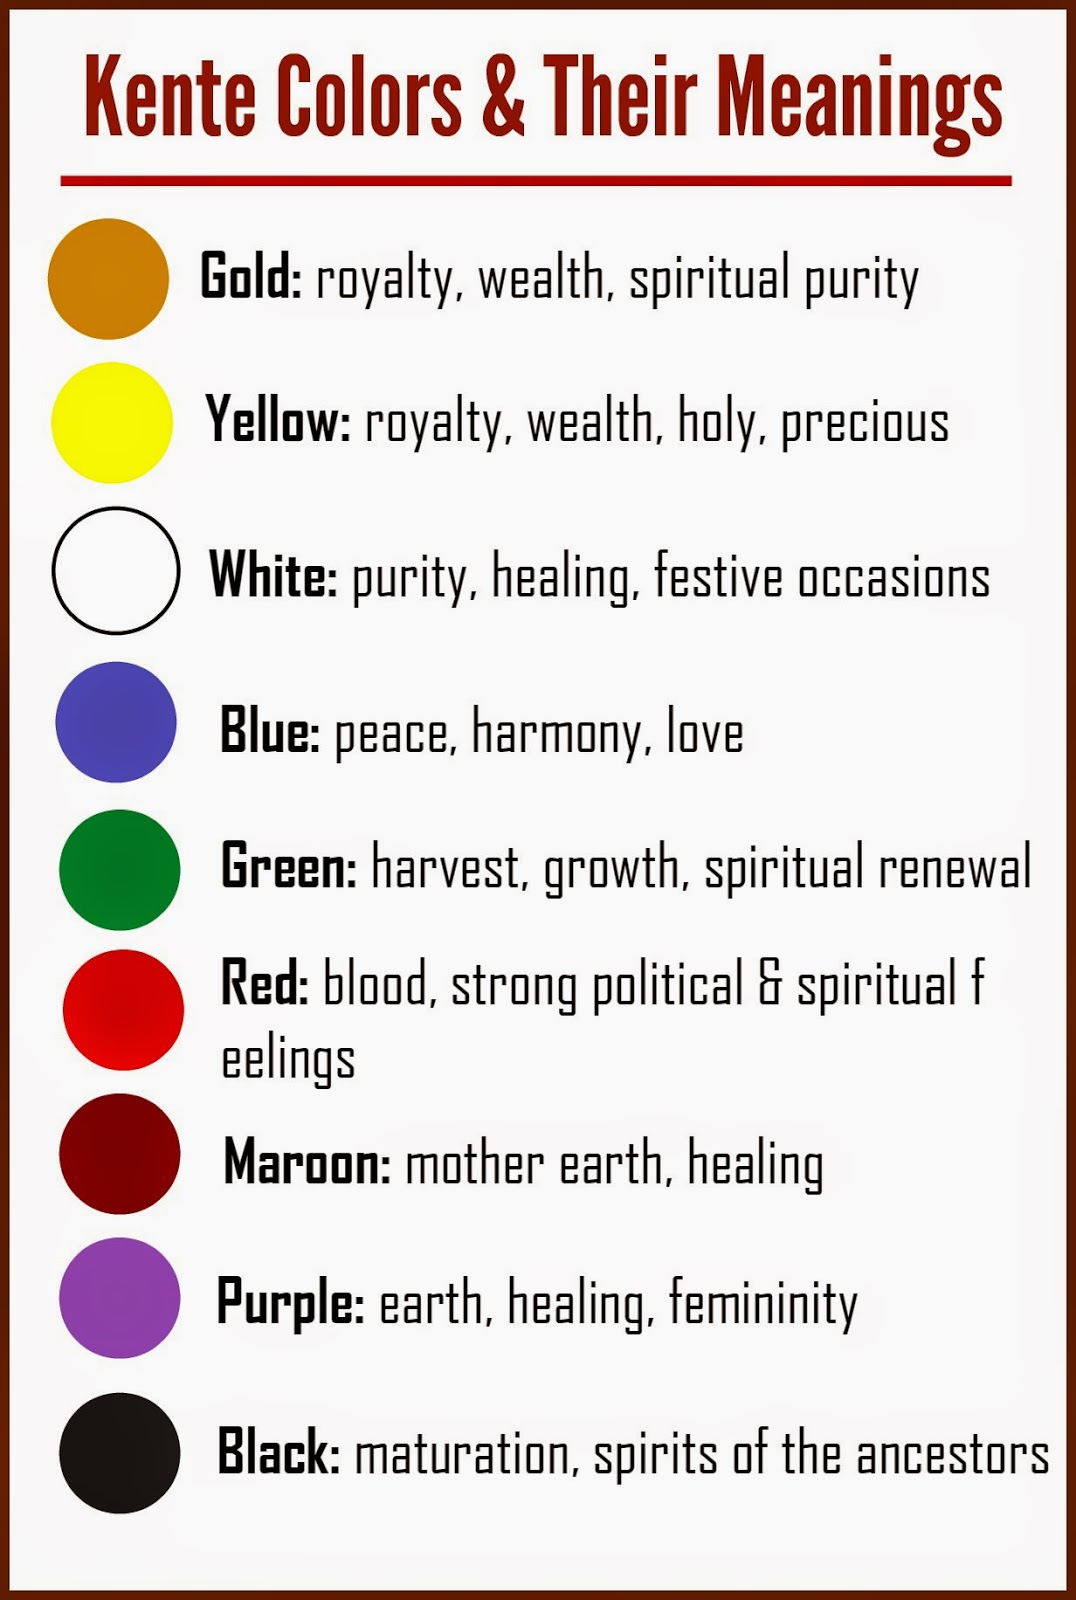 50 MEANING OF COLORS CLOTHING, OF COLORS MEANING CLOTHING